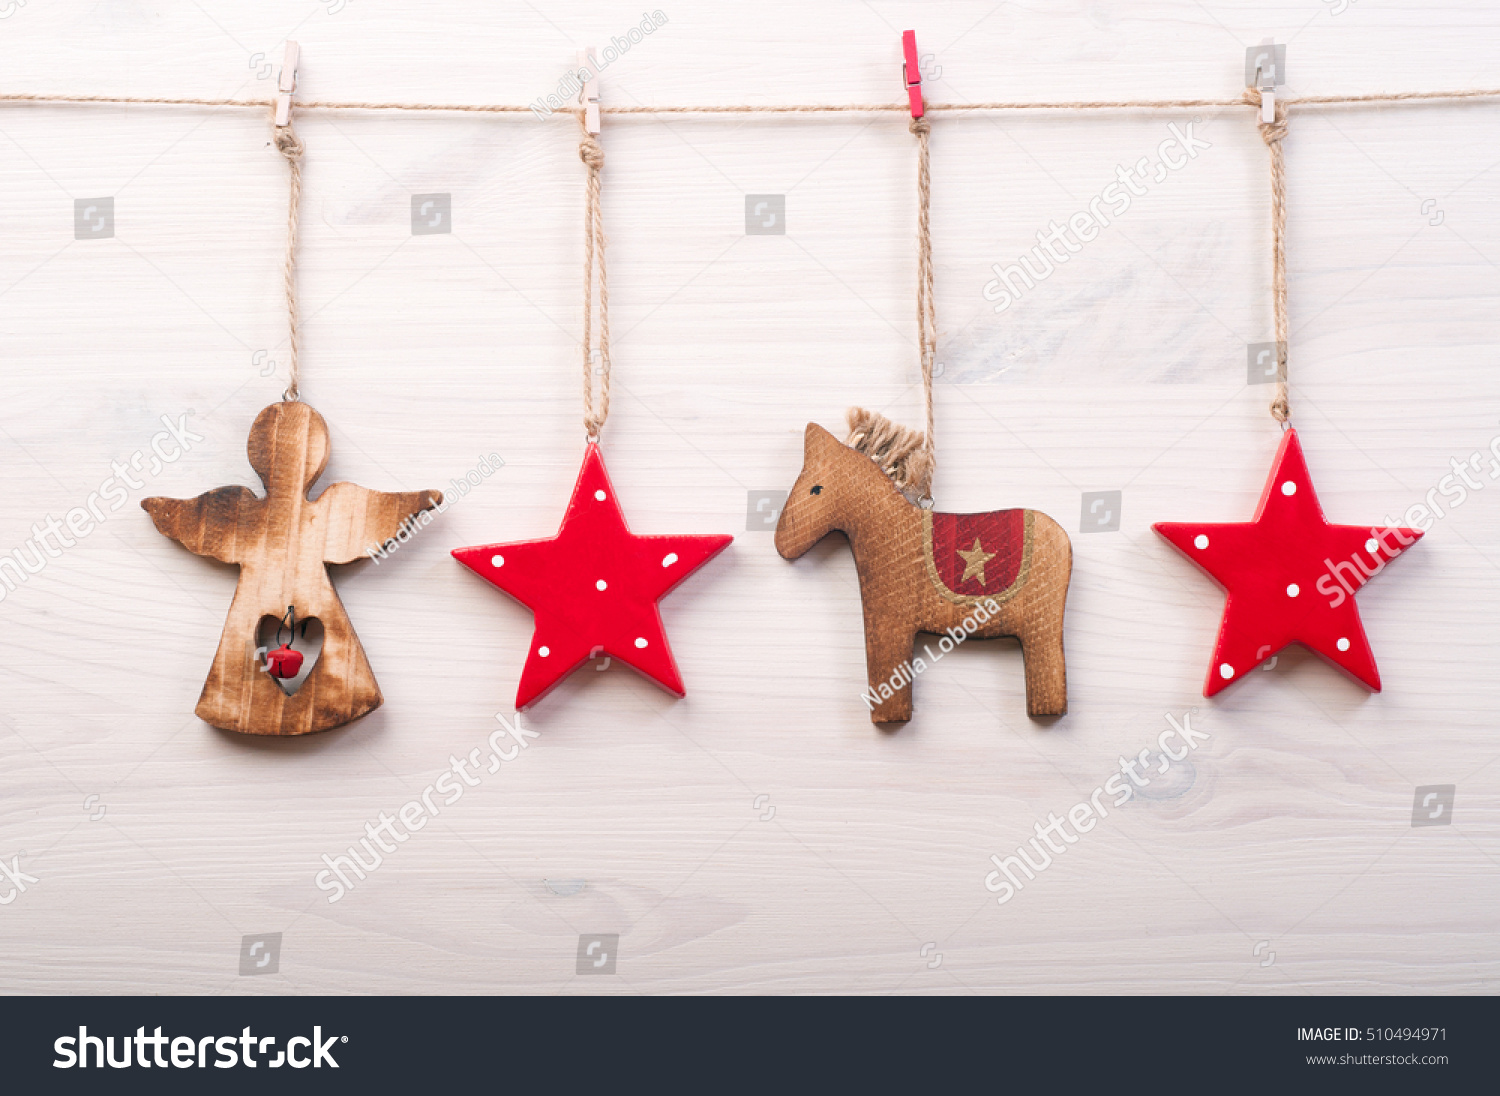 festive christmas and new years background wallpaper or card christmas toys in a